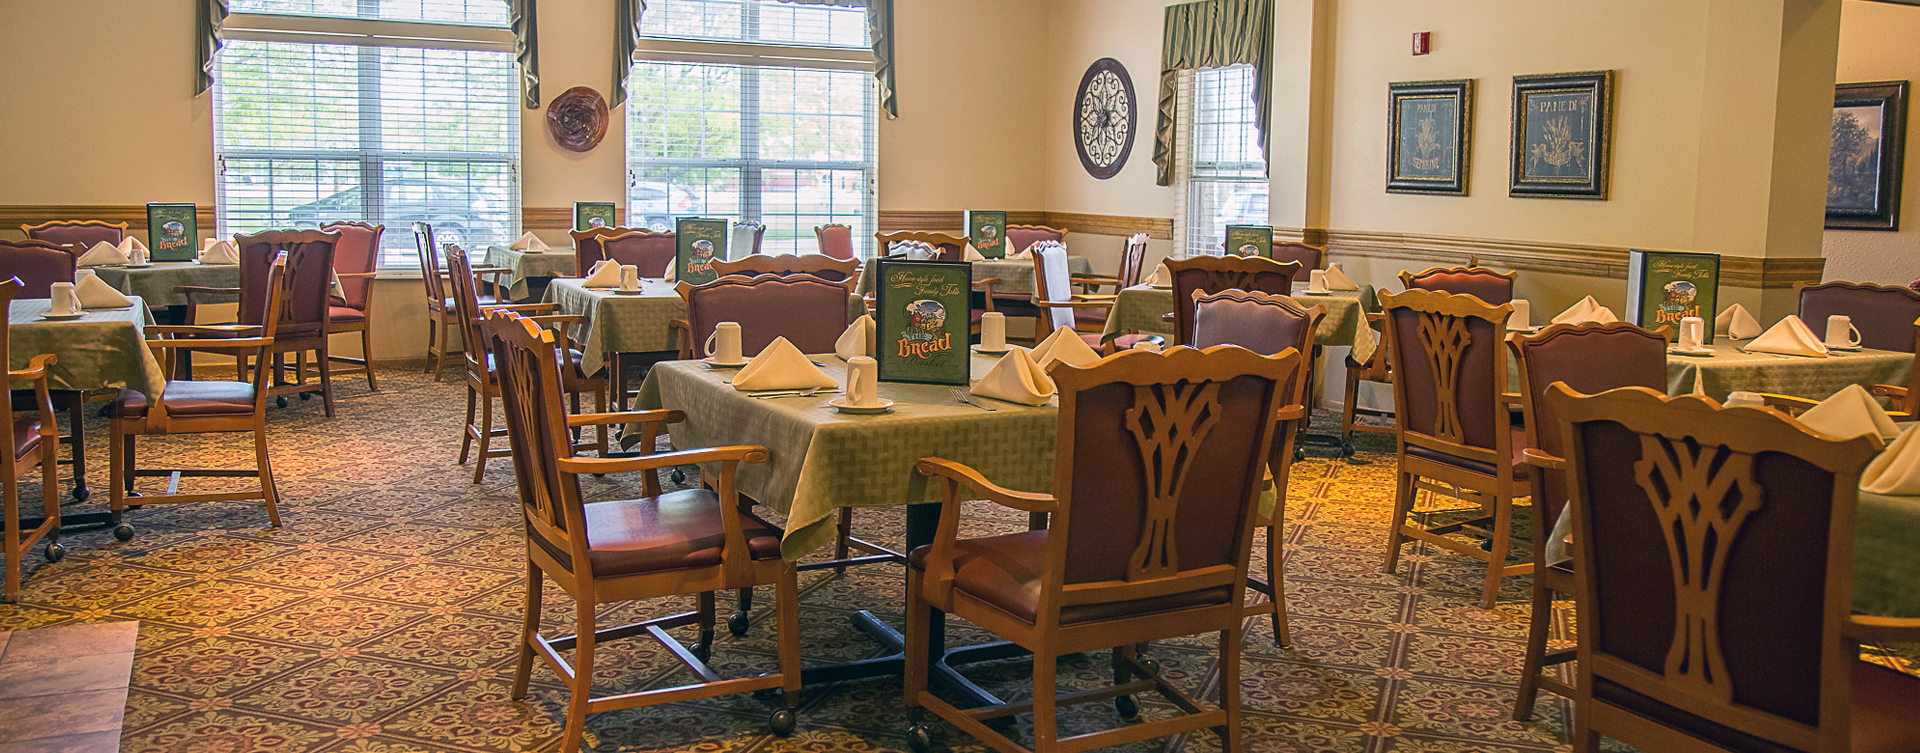 Food is best when shared with friends in the dining room at Bickford of Burlington